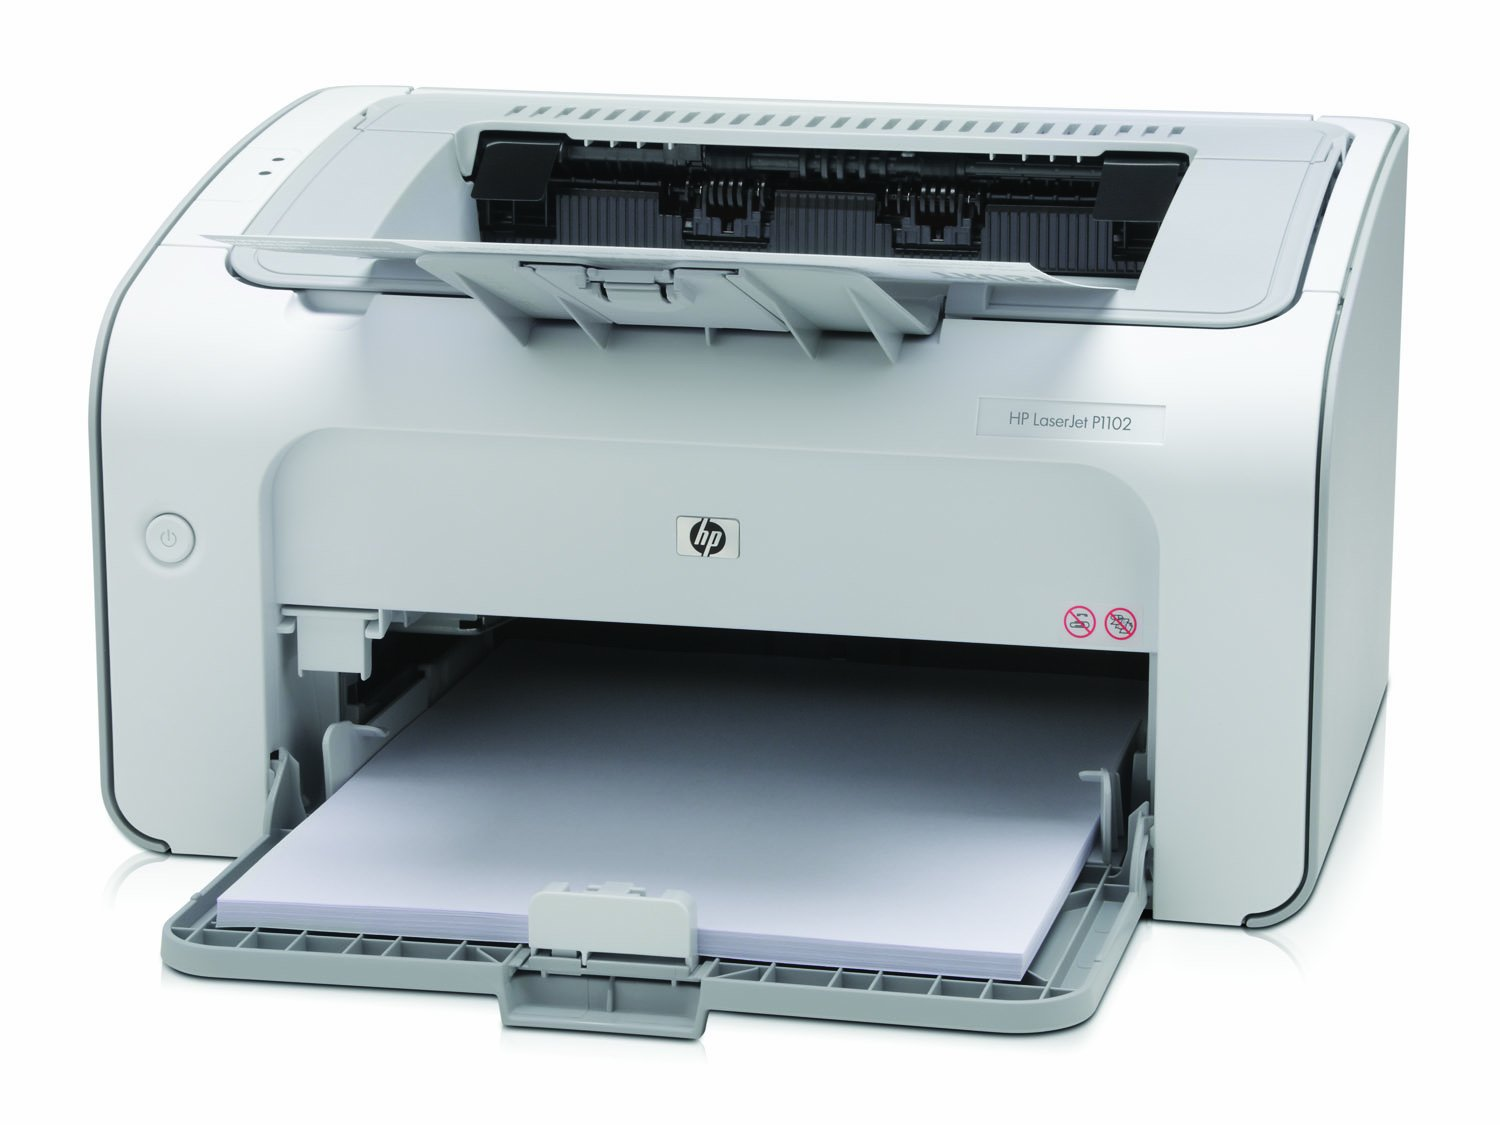 Hp laserjet pro p1102w printer | hp® customer support.